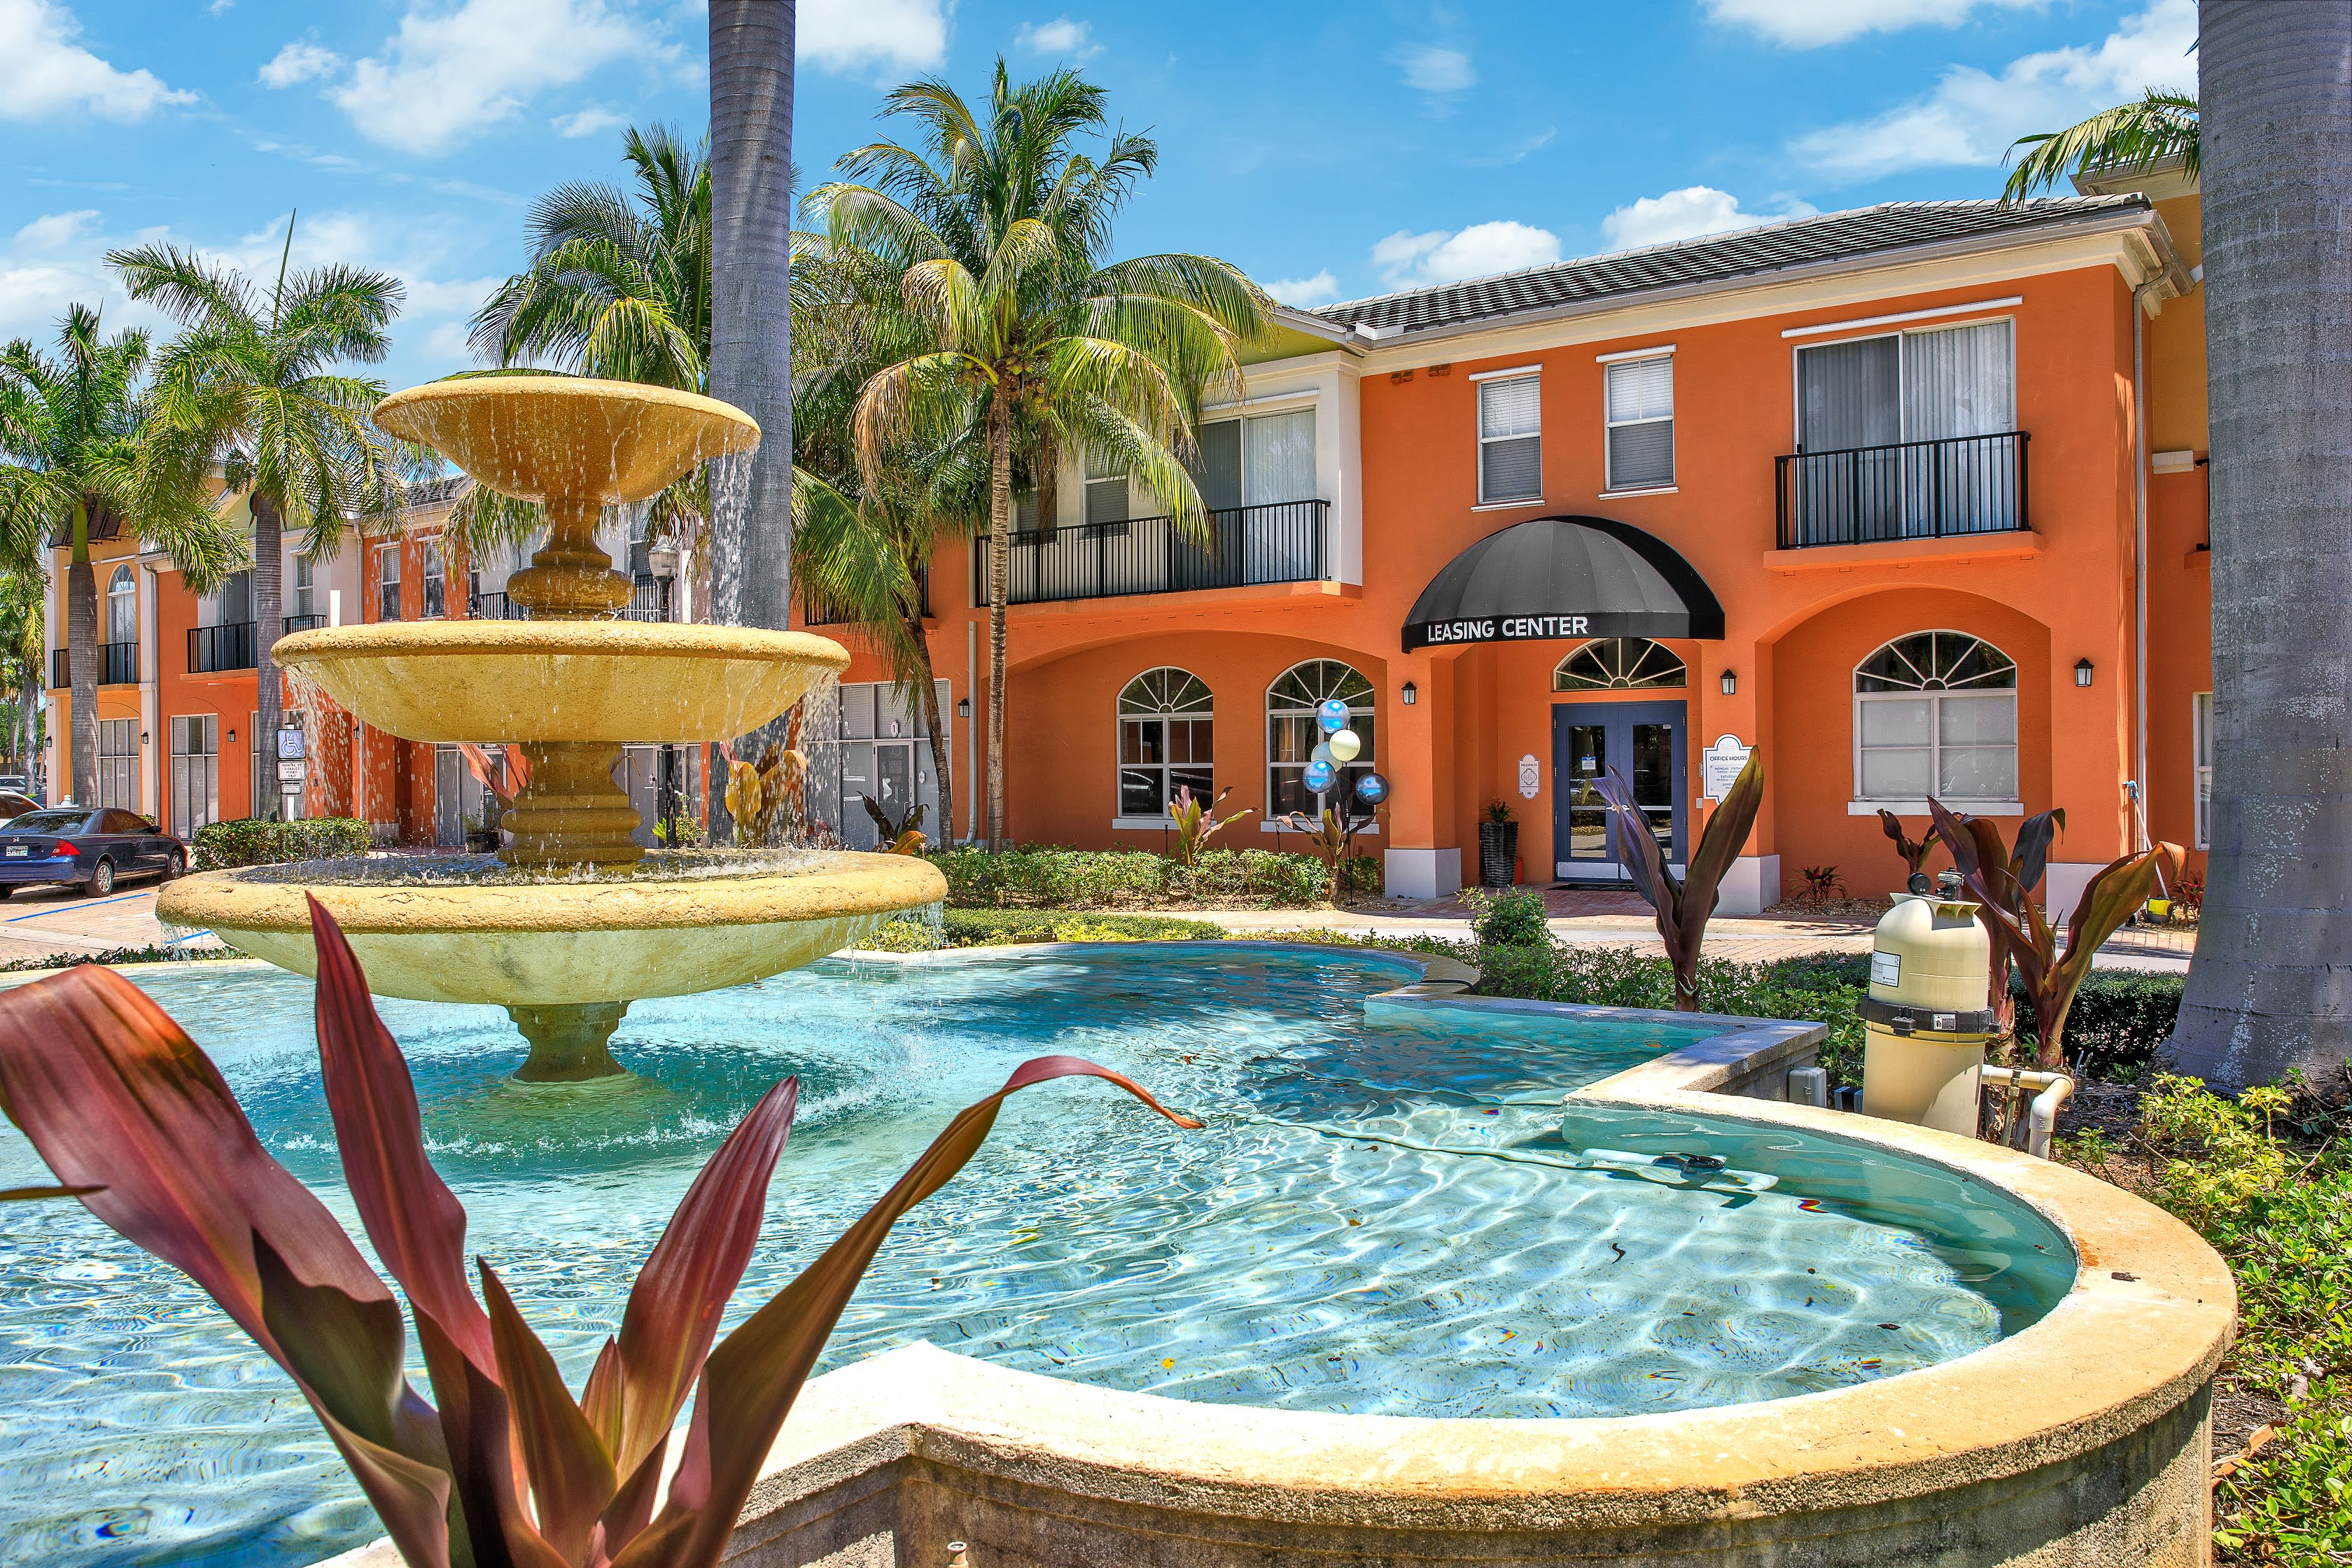 Exterior view of gorgeous colorful building and palm trees at The Pearl in Ft Lauderdale, Florida